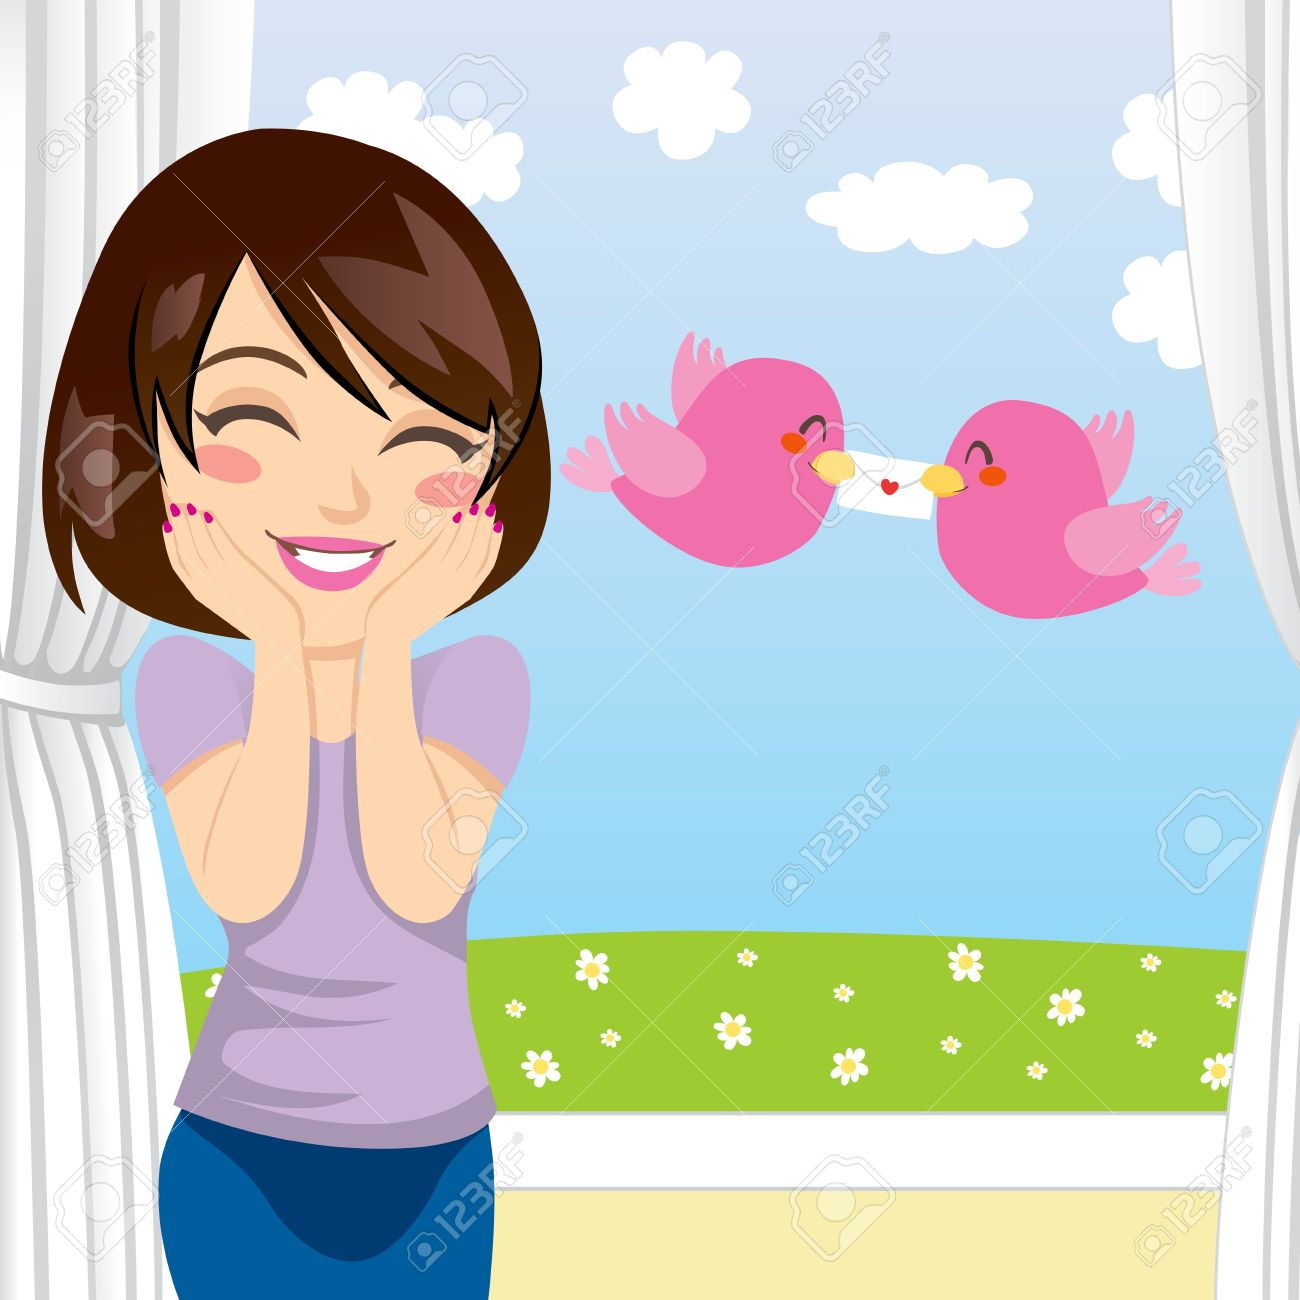 Beautiful woman gets happy surprise when two birds give her a love letter through an open window Stock Vector - 12357412